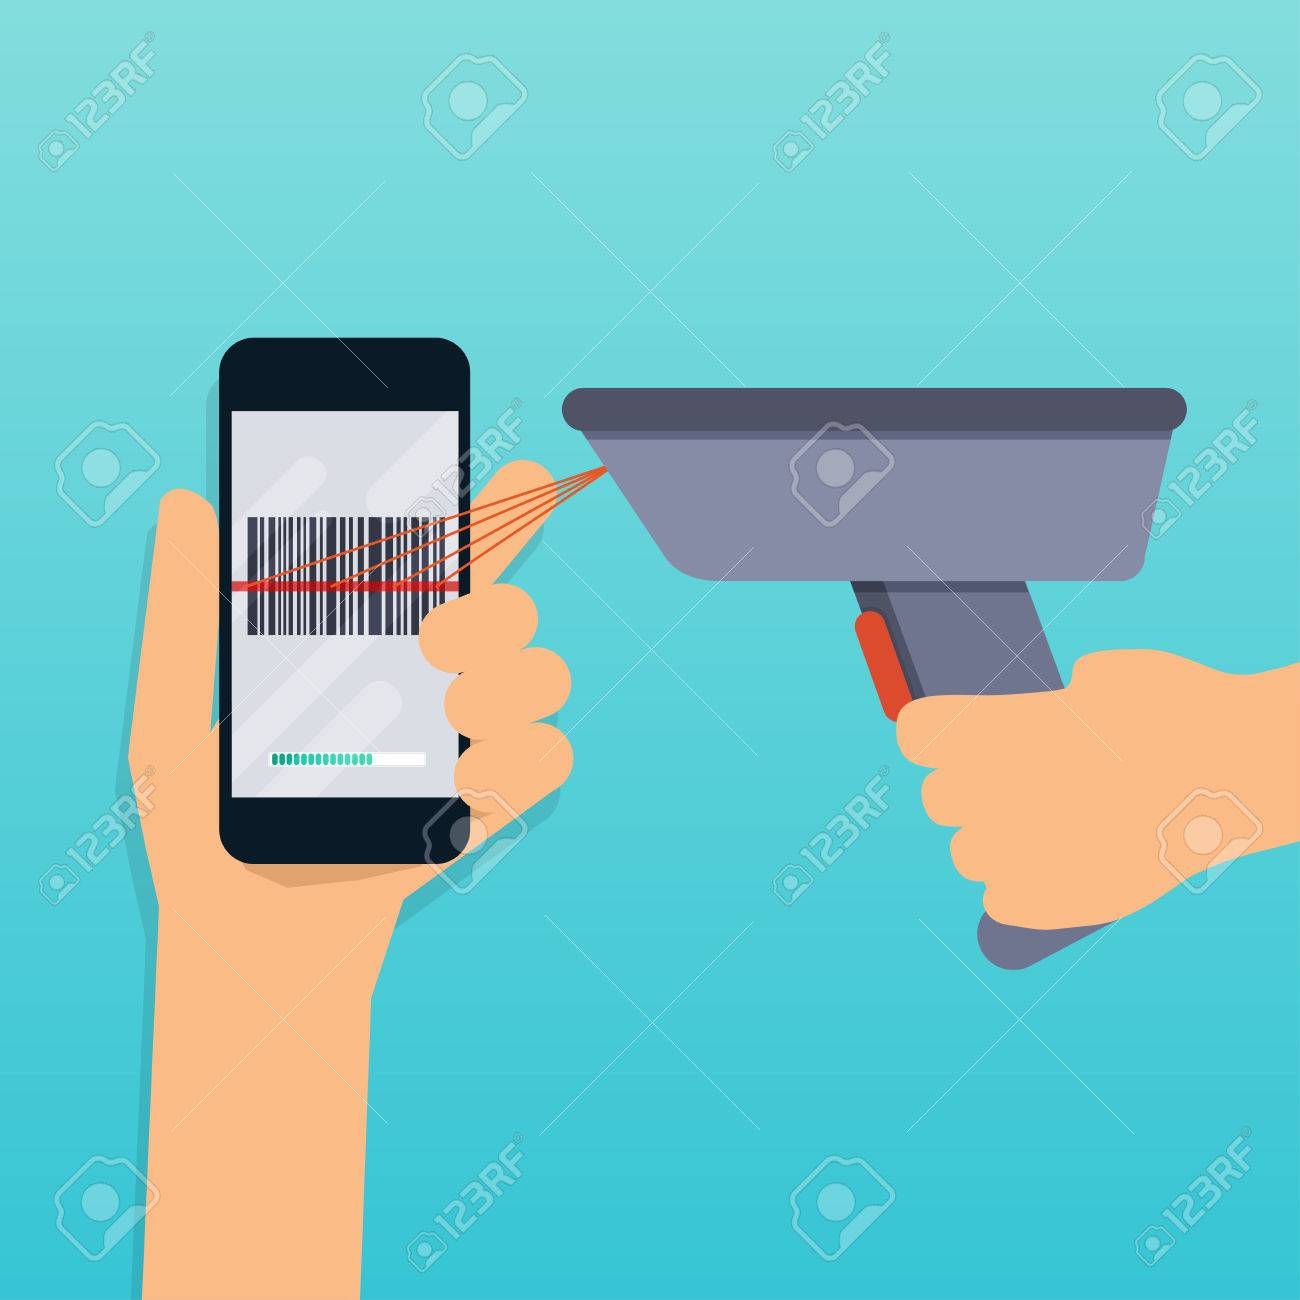 A Barcode Scanner Scanning A Bar Code On A Mobile Phone Flat